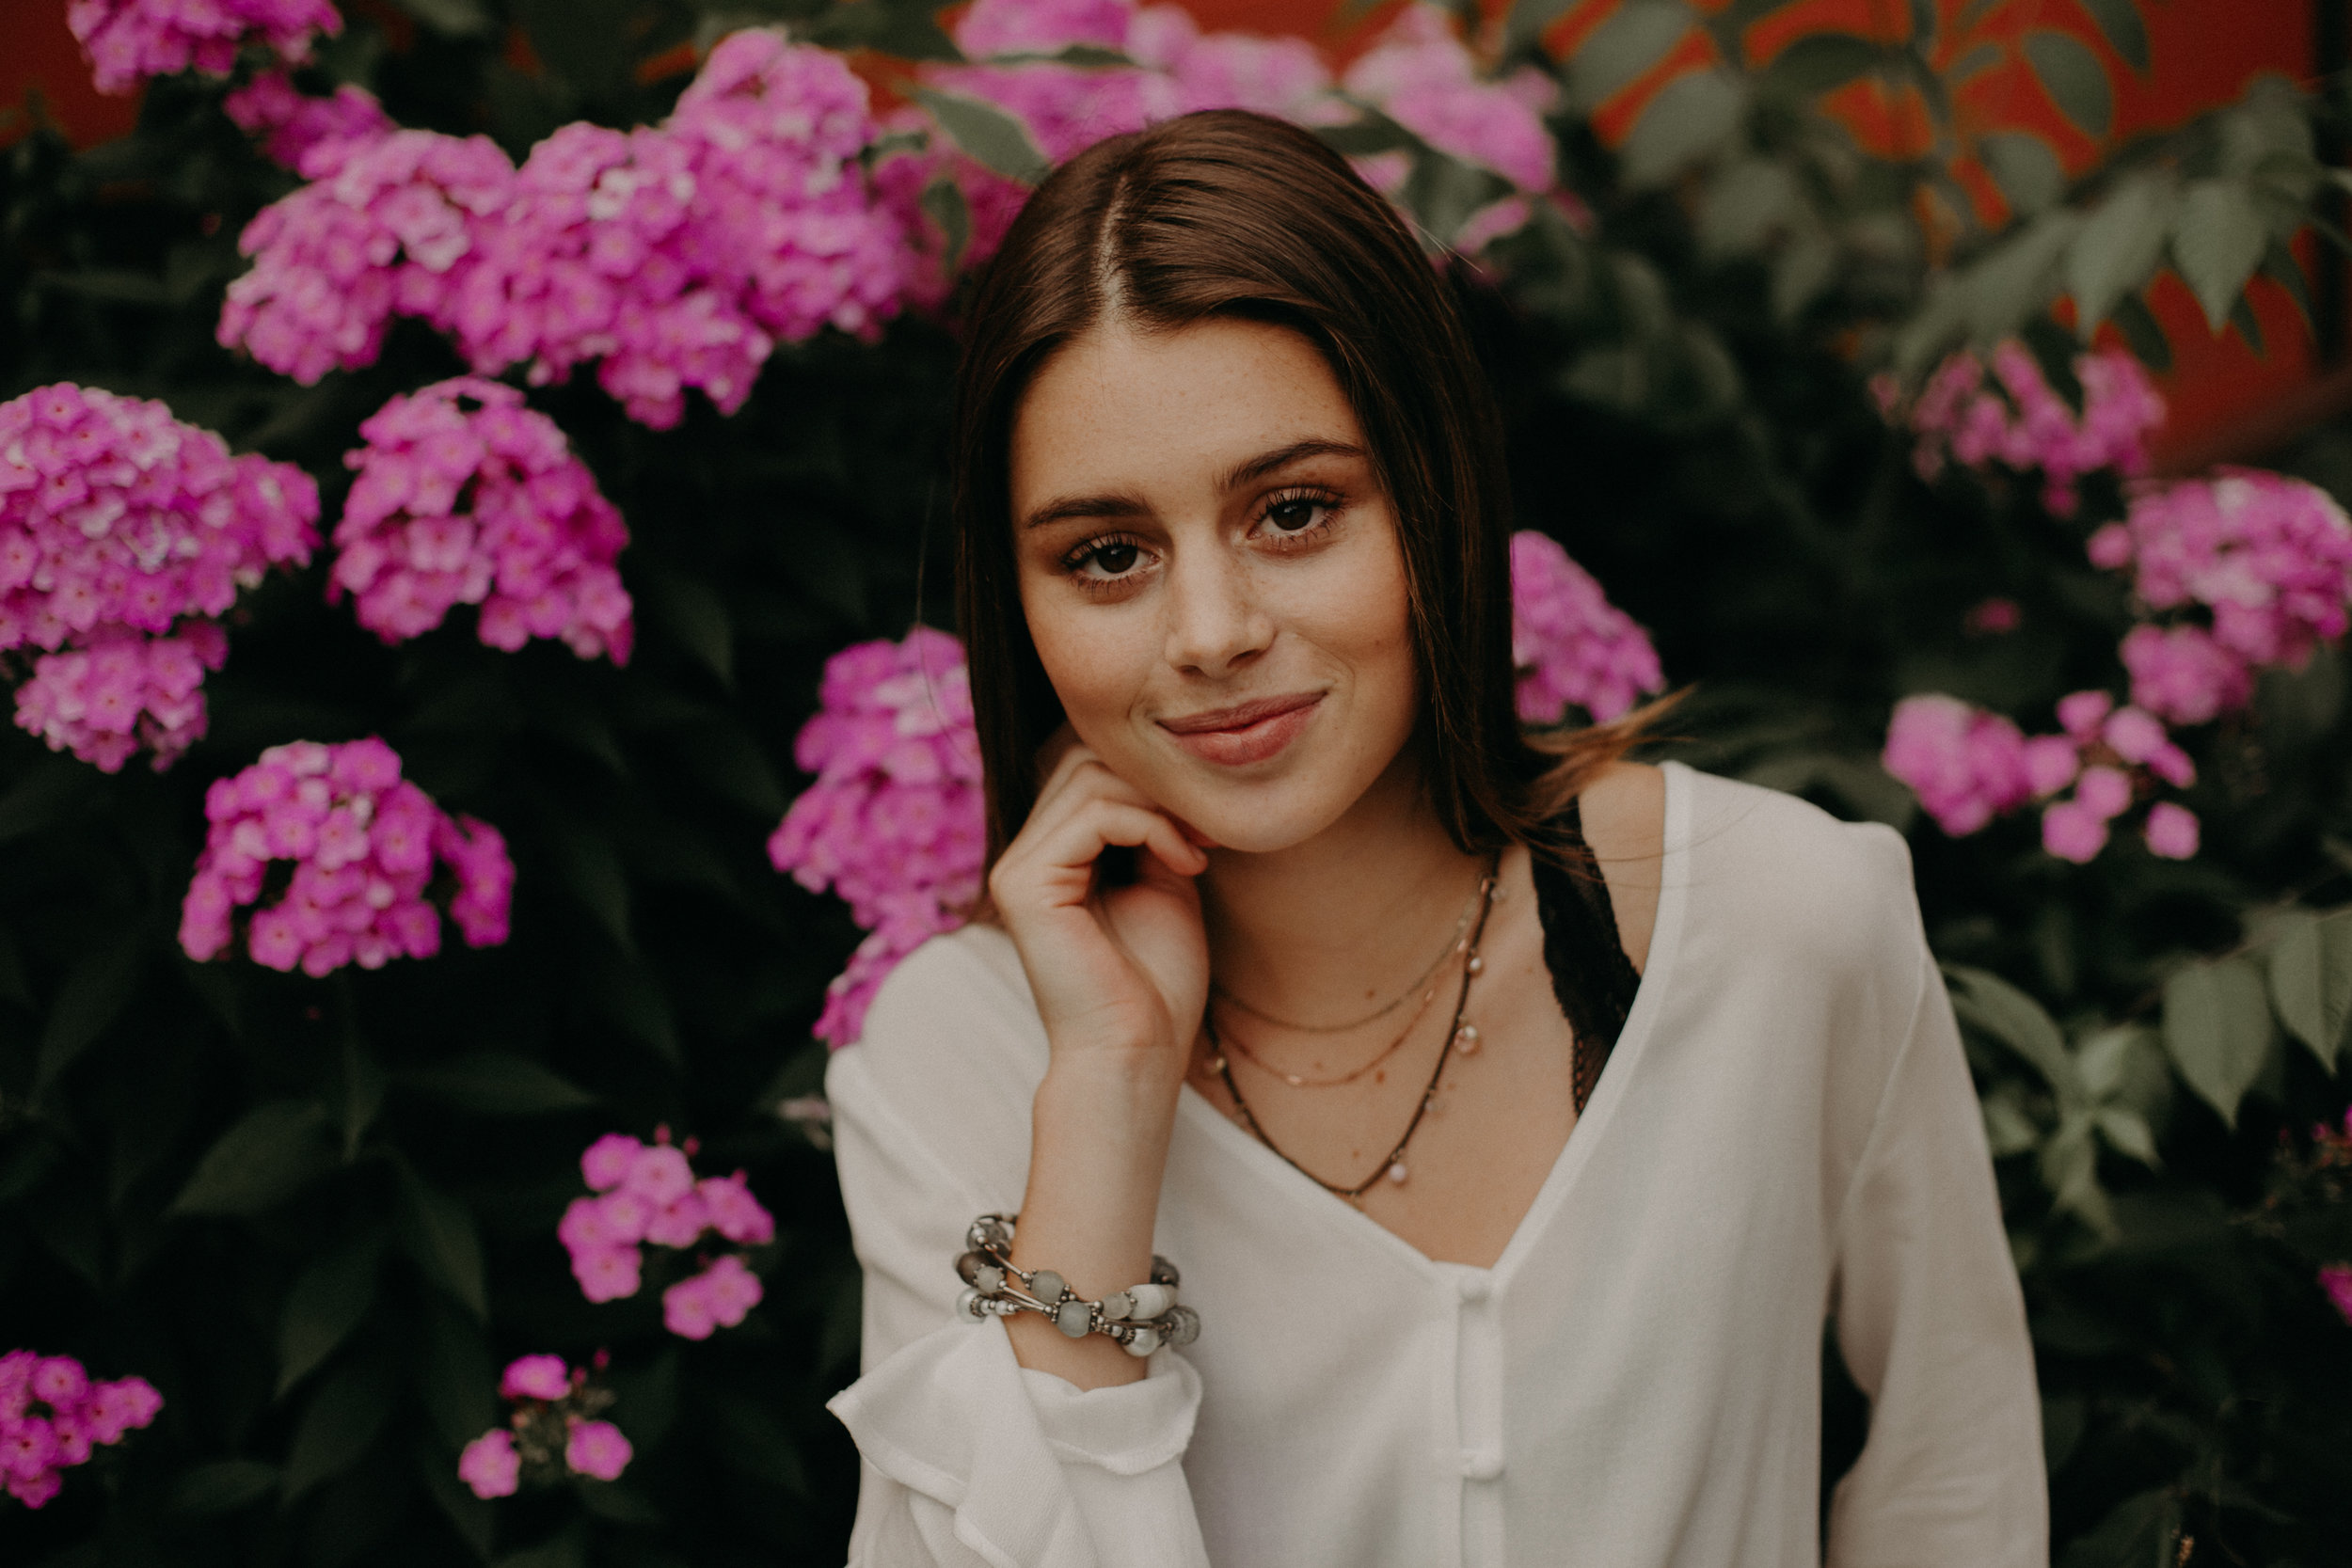 Andrea Wagner Photography captures colorful pink flowers in the background of a high school senior's photos in Stillwater MN